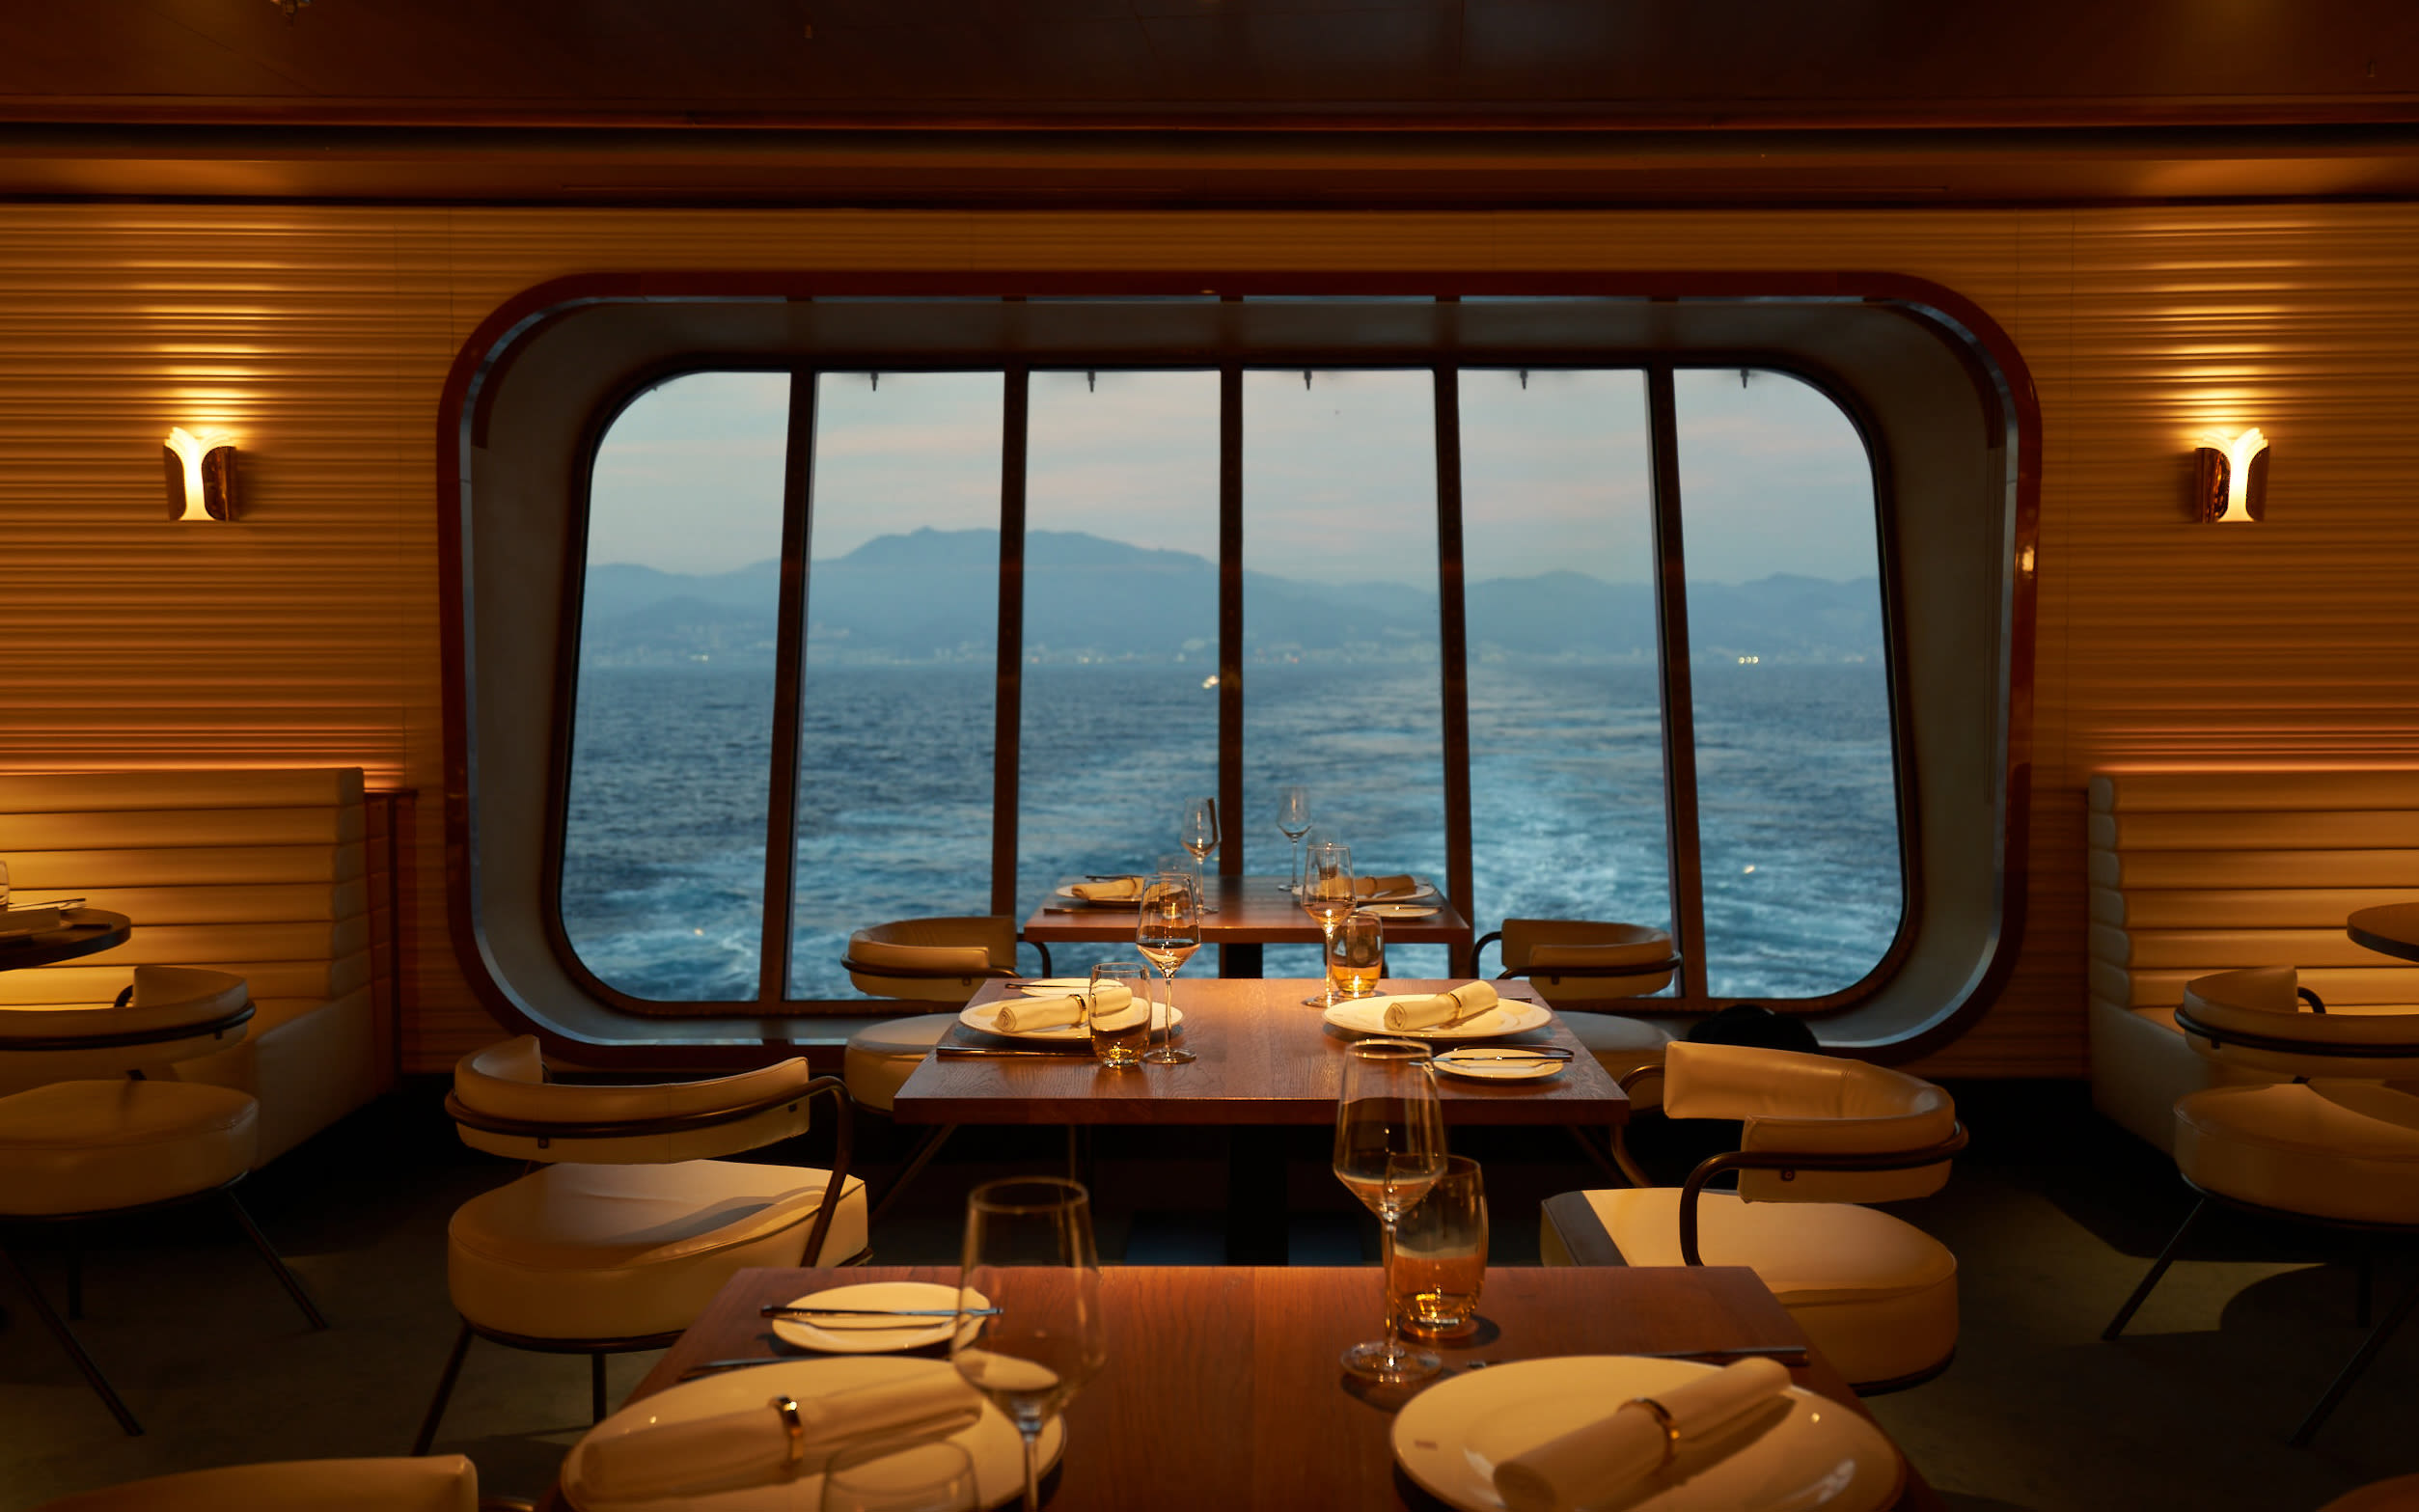 A restaurant on board Virgin Voyages' ship Scarlet Lady